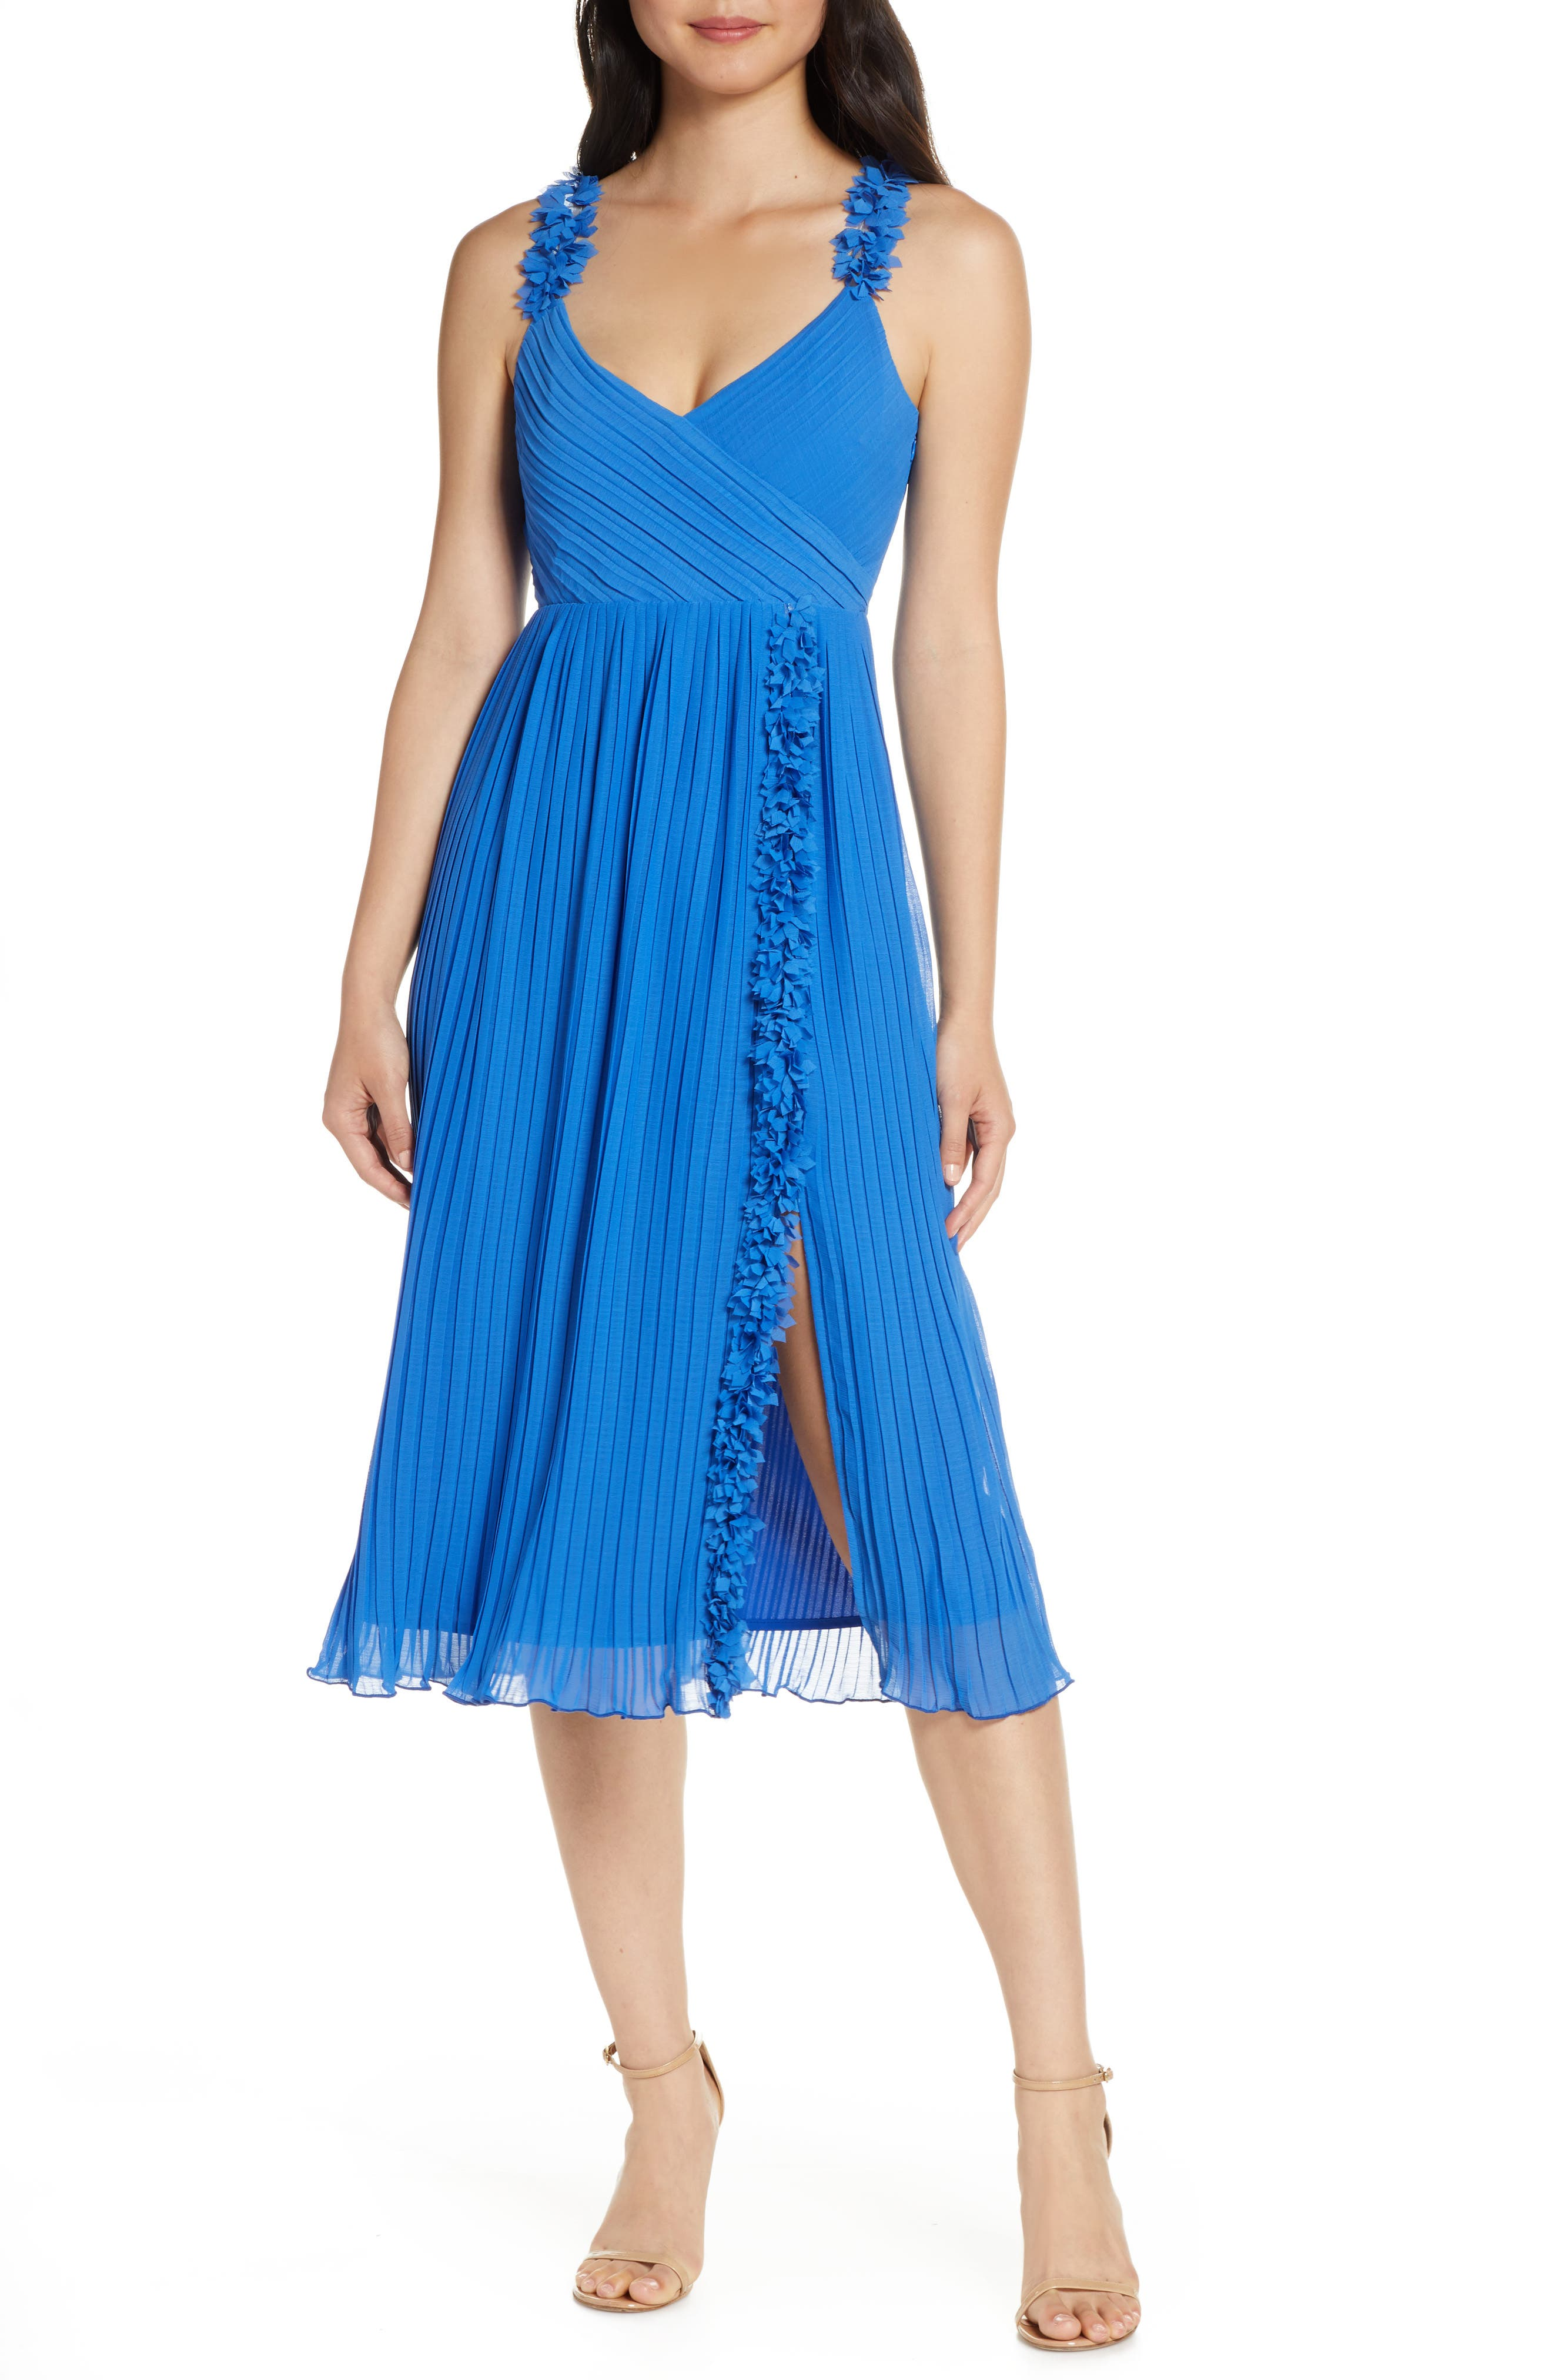 Foxiedox Pleated Front Slit Cocktail Dress, Black